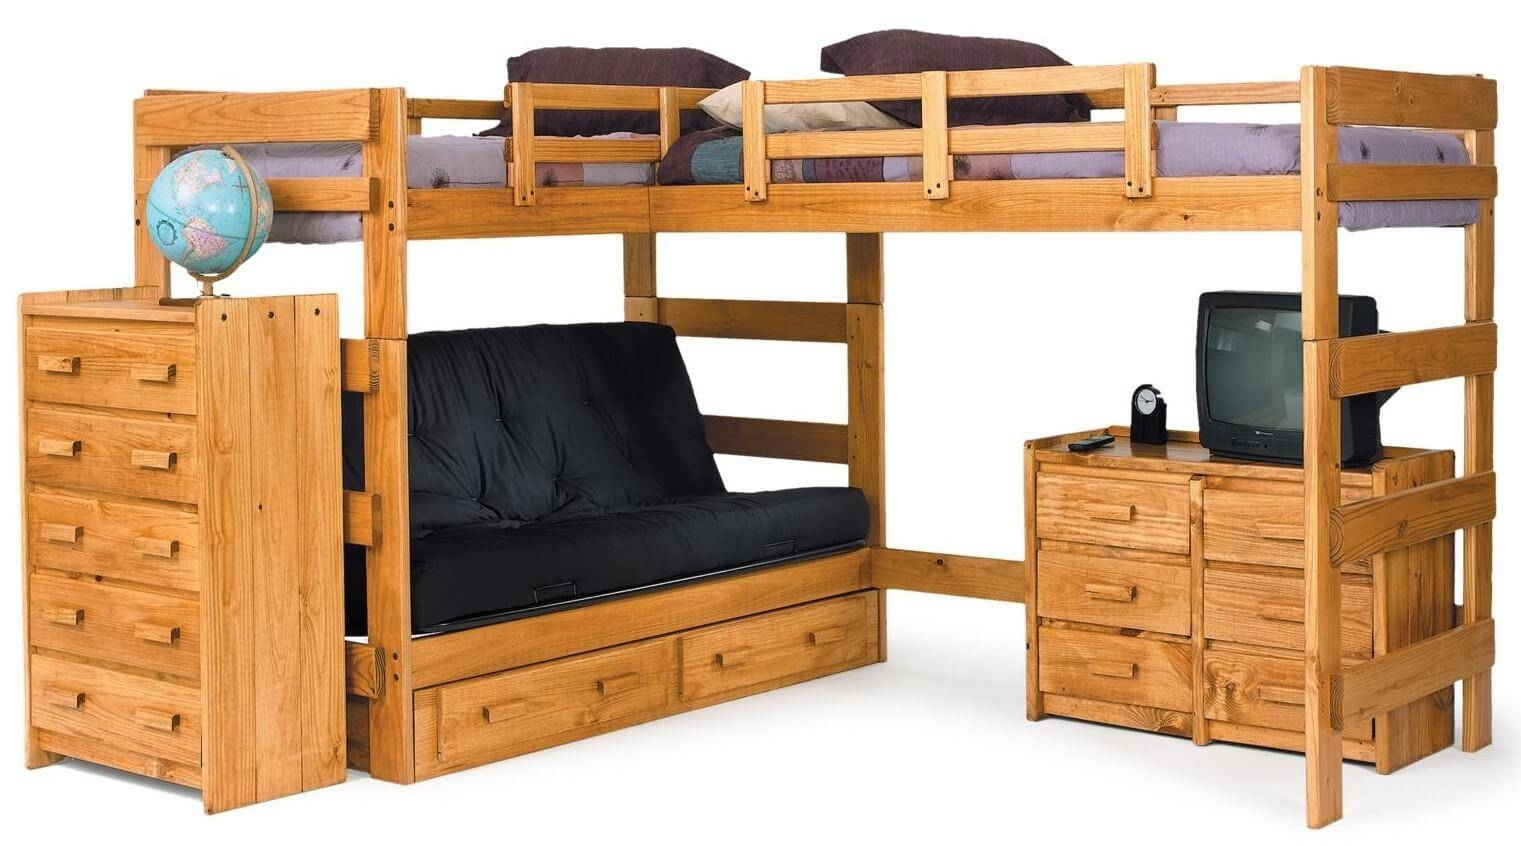 21 Top Wooden L-Shaped Bunk Beds (With Space-Saving Features) inside Bunk Bed With Sofas Underneath (Image 2 of 15)